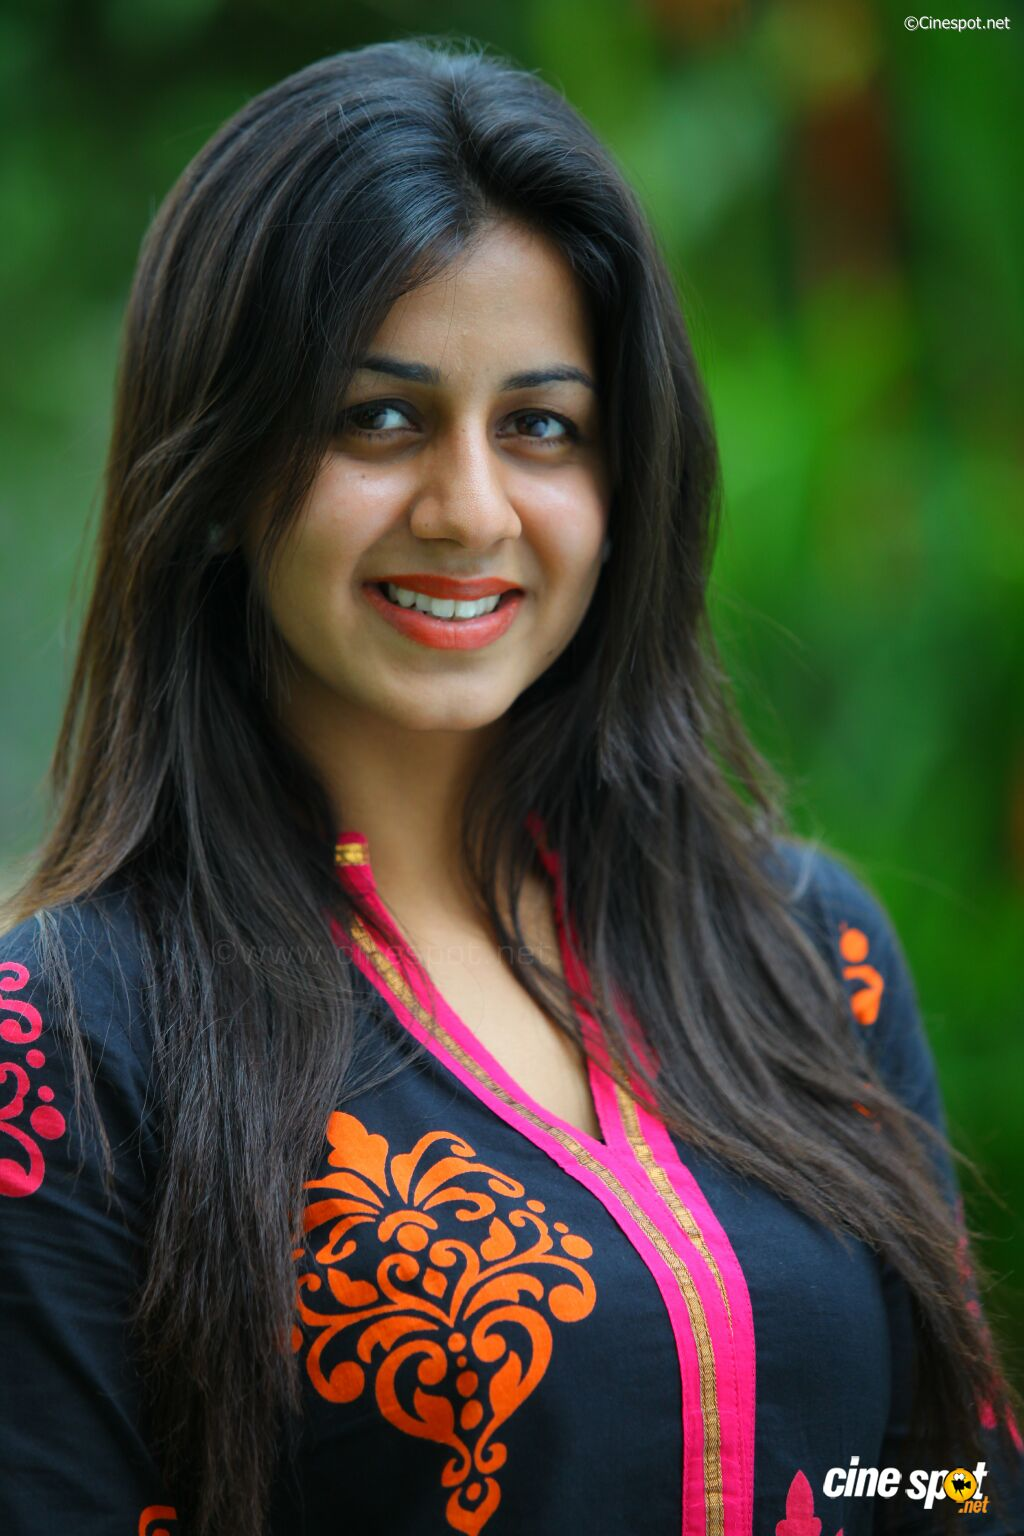 Nikki Galrani photoshoot (6): www.cinespot.net/gallery/v/South+Cinema/Actress/Nikki+Galrani...